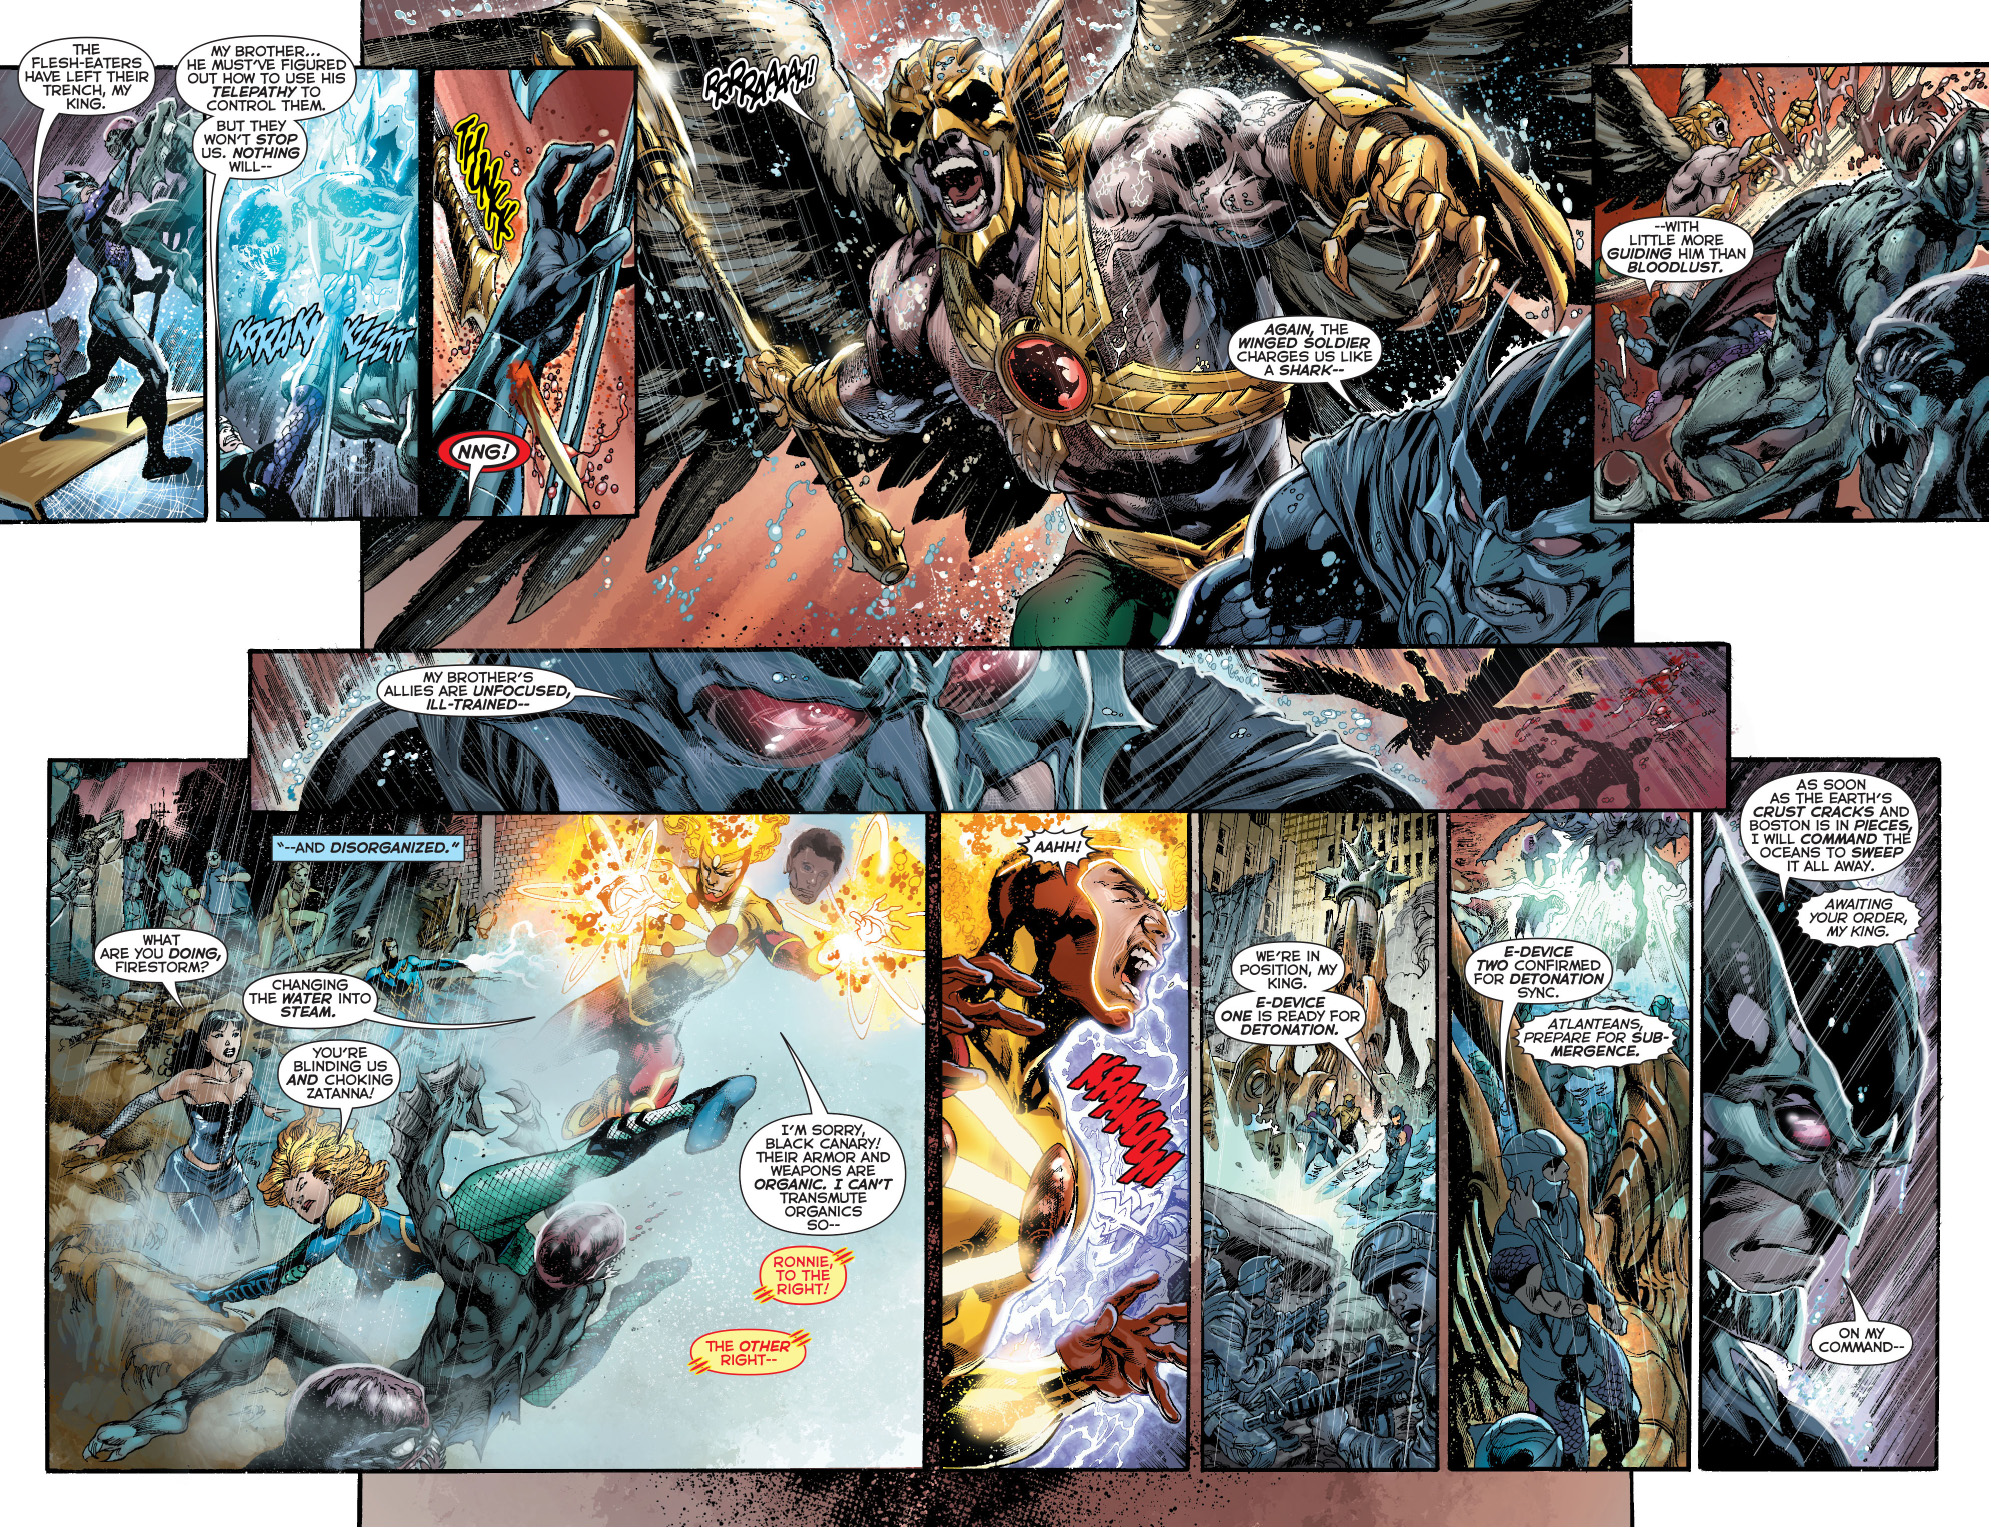 Justice League vs Ocean Master and the Atlanteans